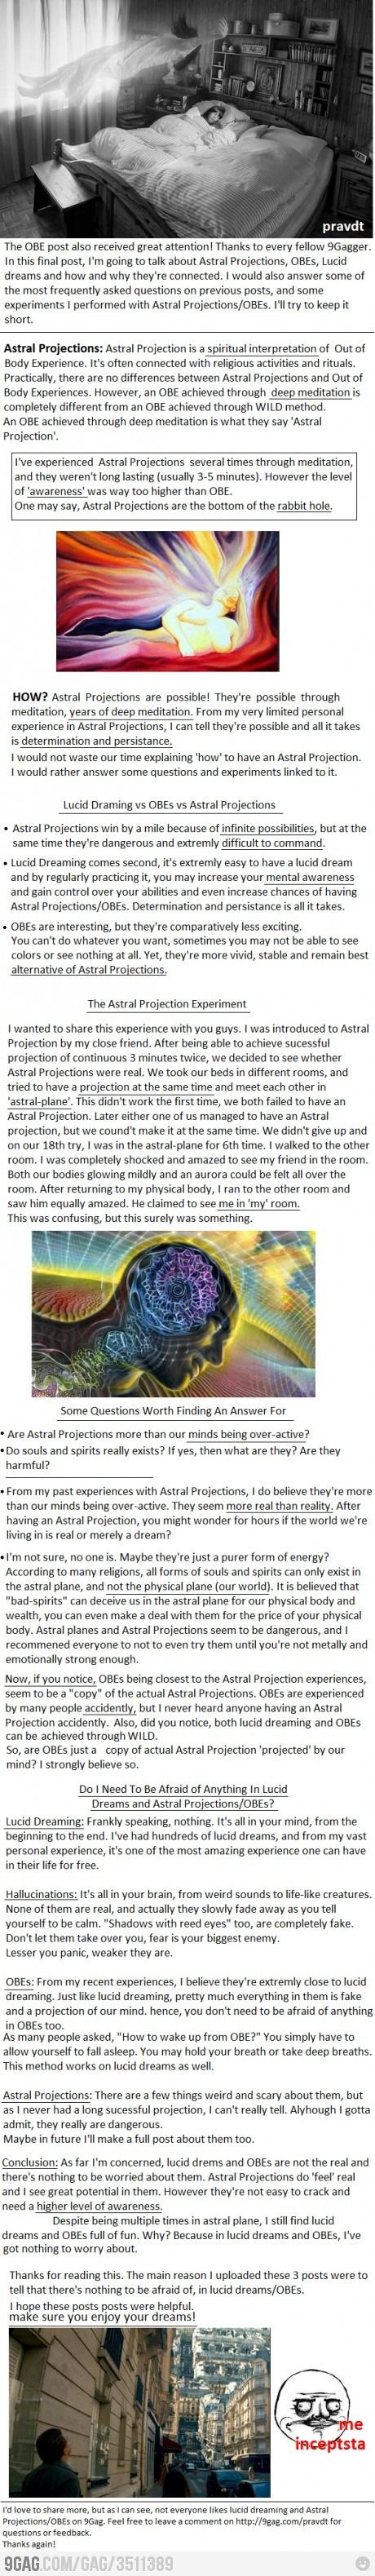 dangers of astral projection Dangers of astral proje ction when people first become interested in this topic, they often wonder if there are any dangers of astral proje ction.